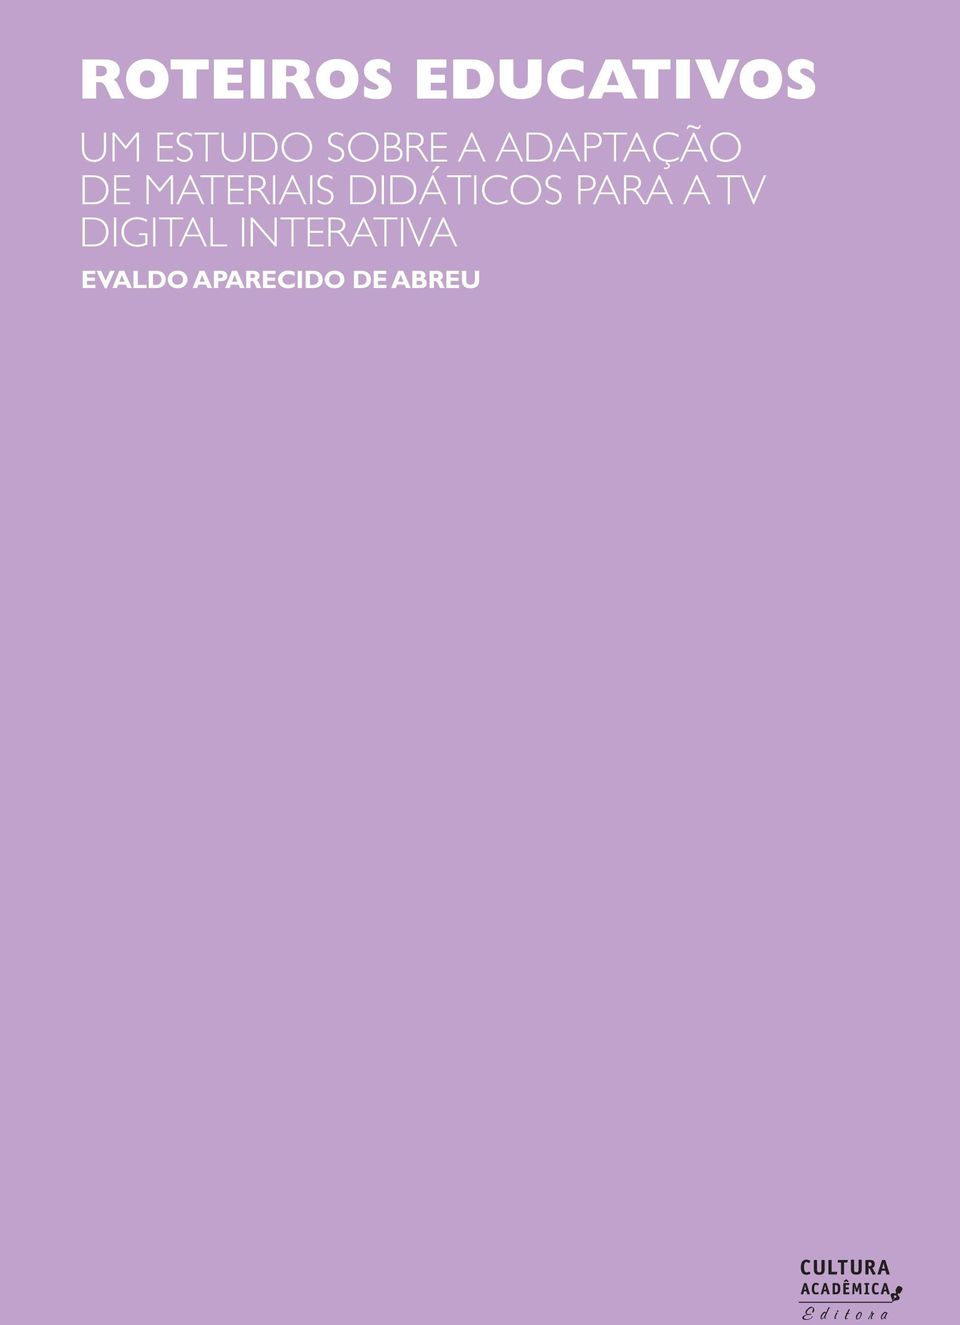 DIDÁTICOS PARA A TV DIGITAL